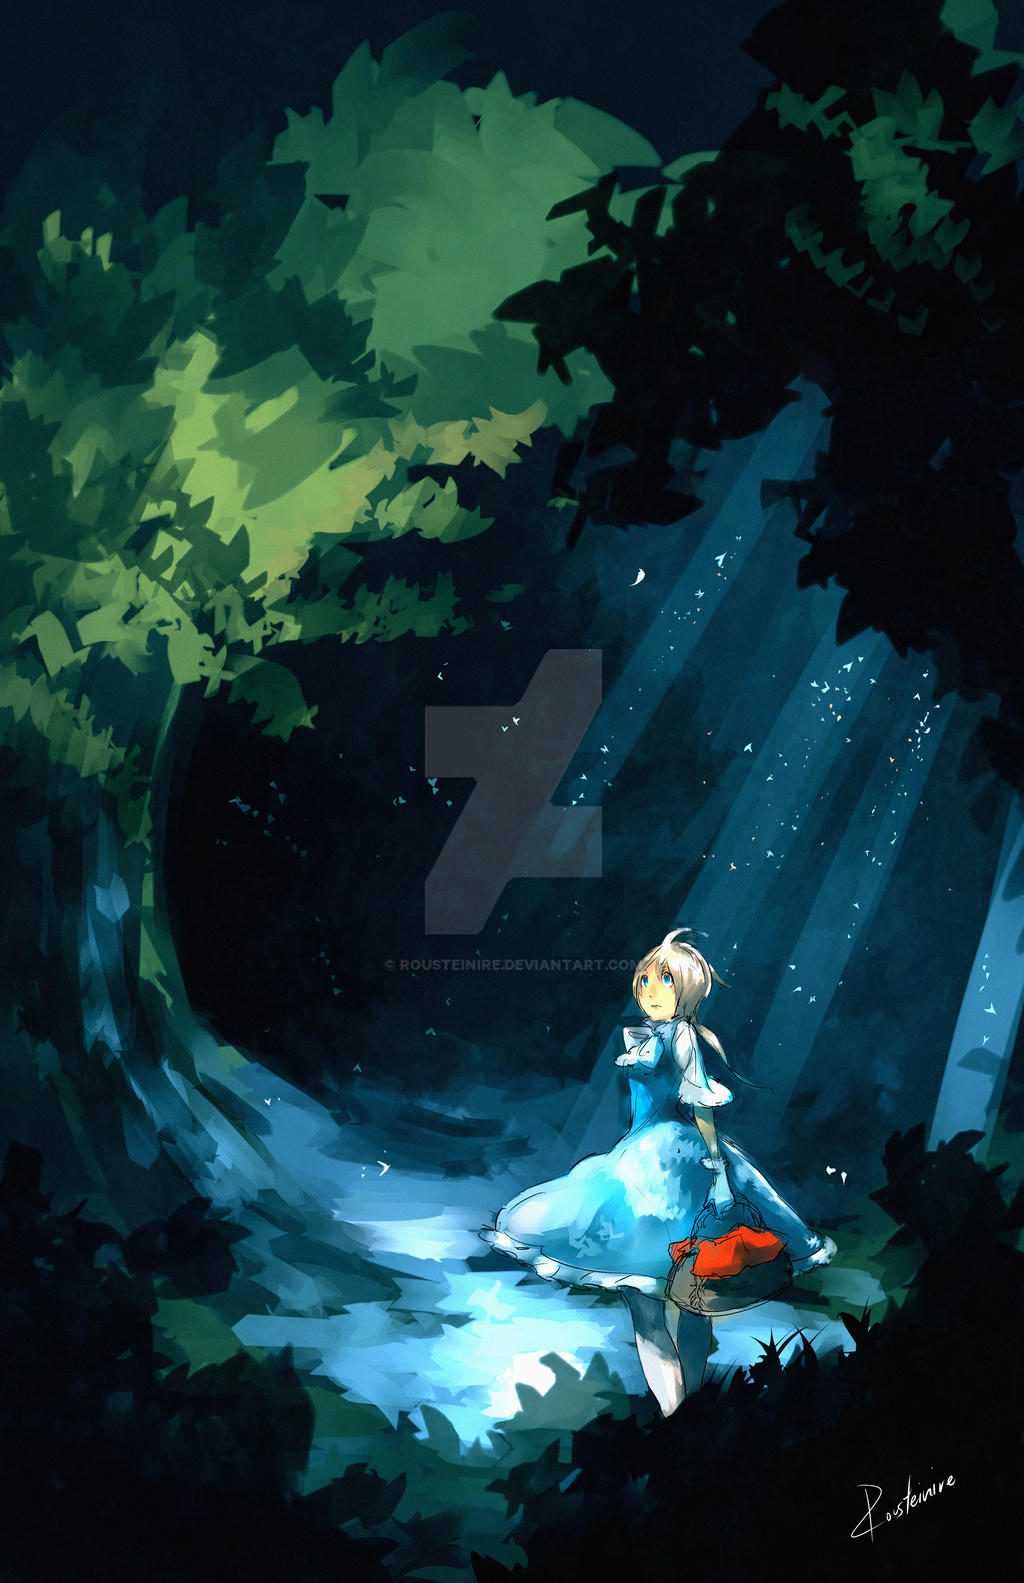 100 Theme - Alice in Wonderland by Rousteinire